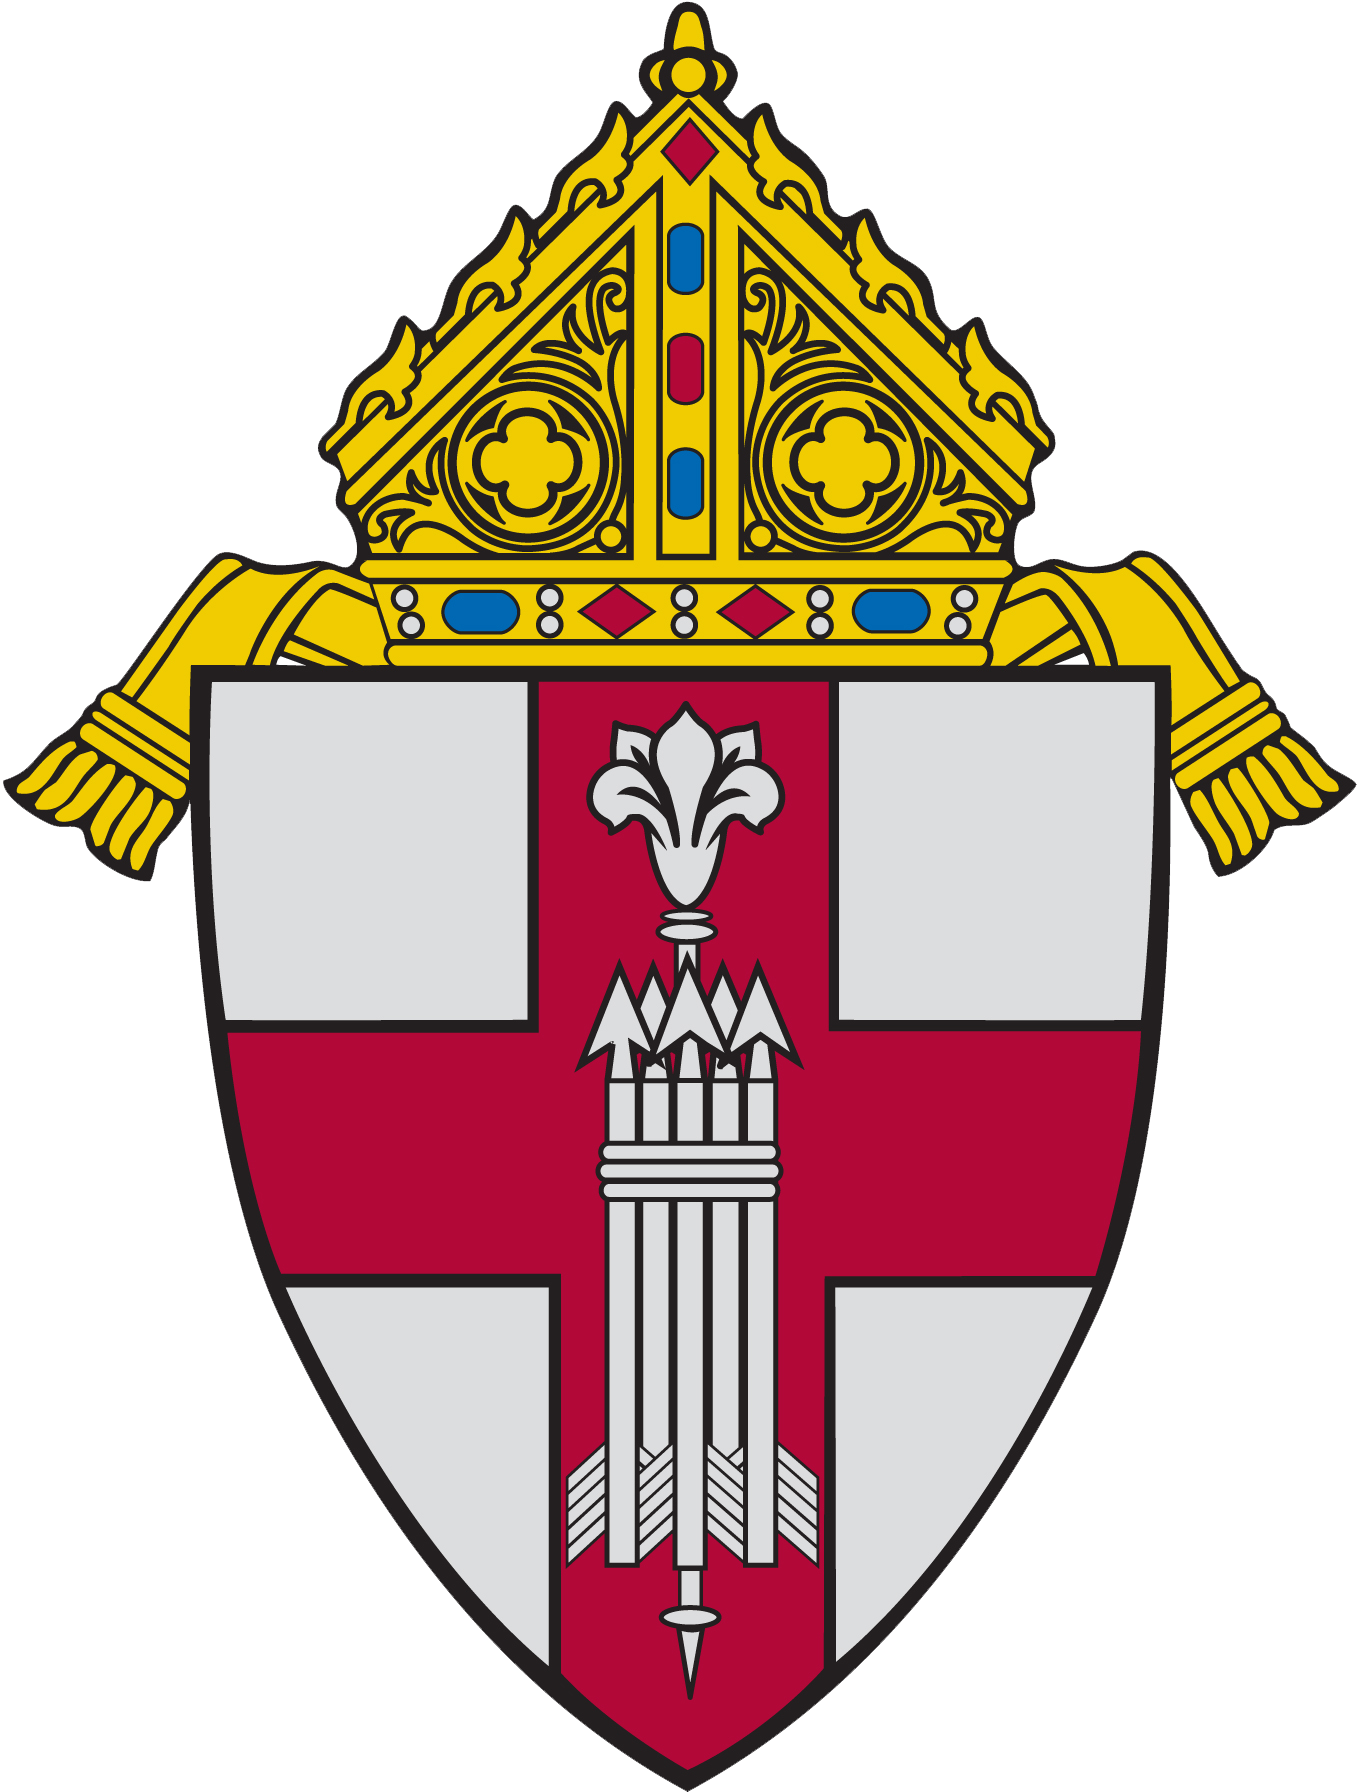 Office of the bishop of new hampshire clipart png transparent stock Roman Catholic Diocese of Manchester - Wikipedia png transparent stock